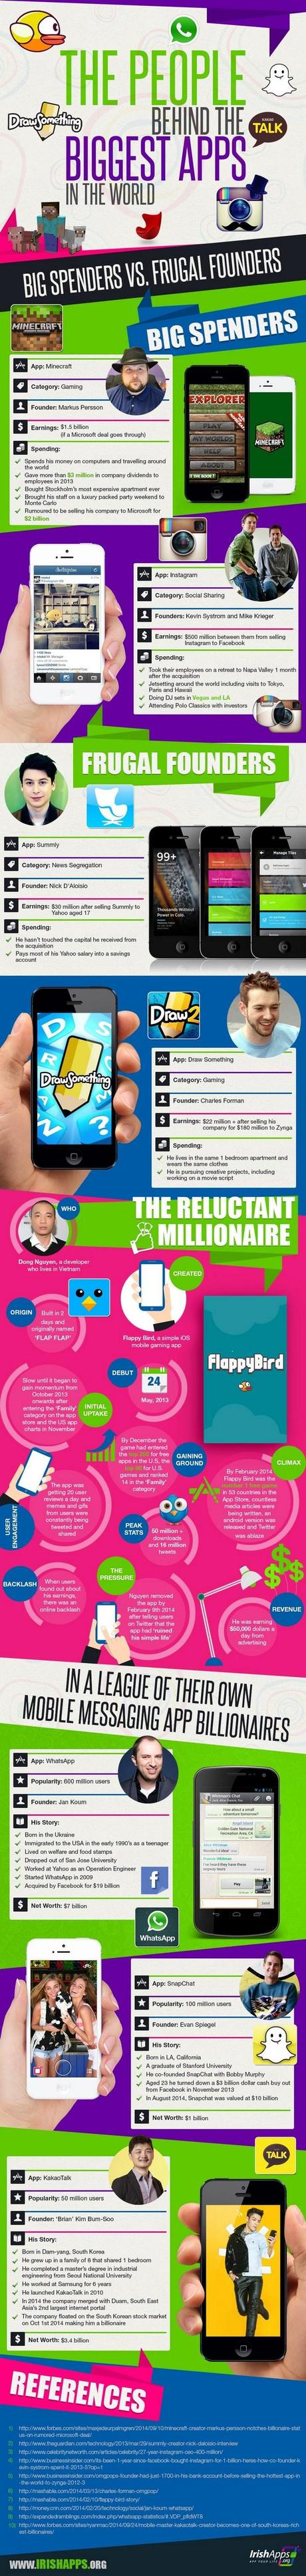 People Behind the Apps-infographic